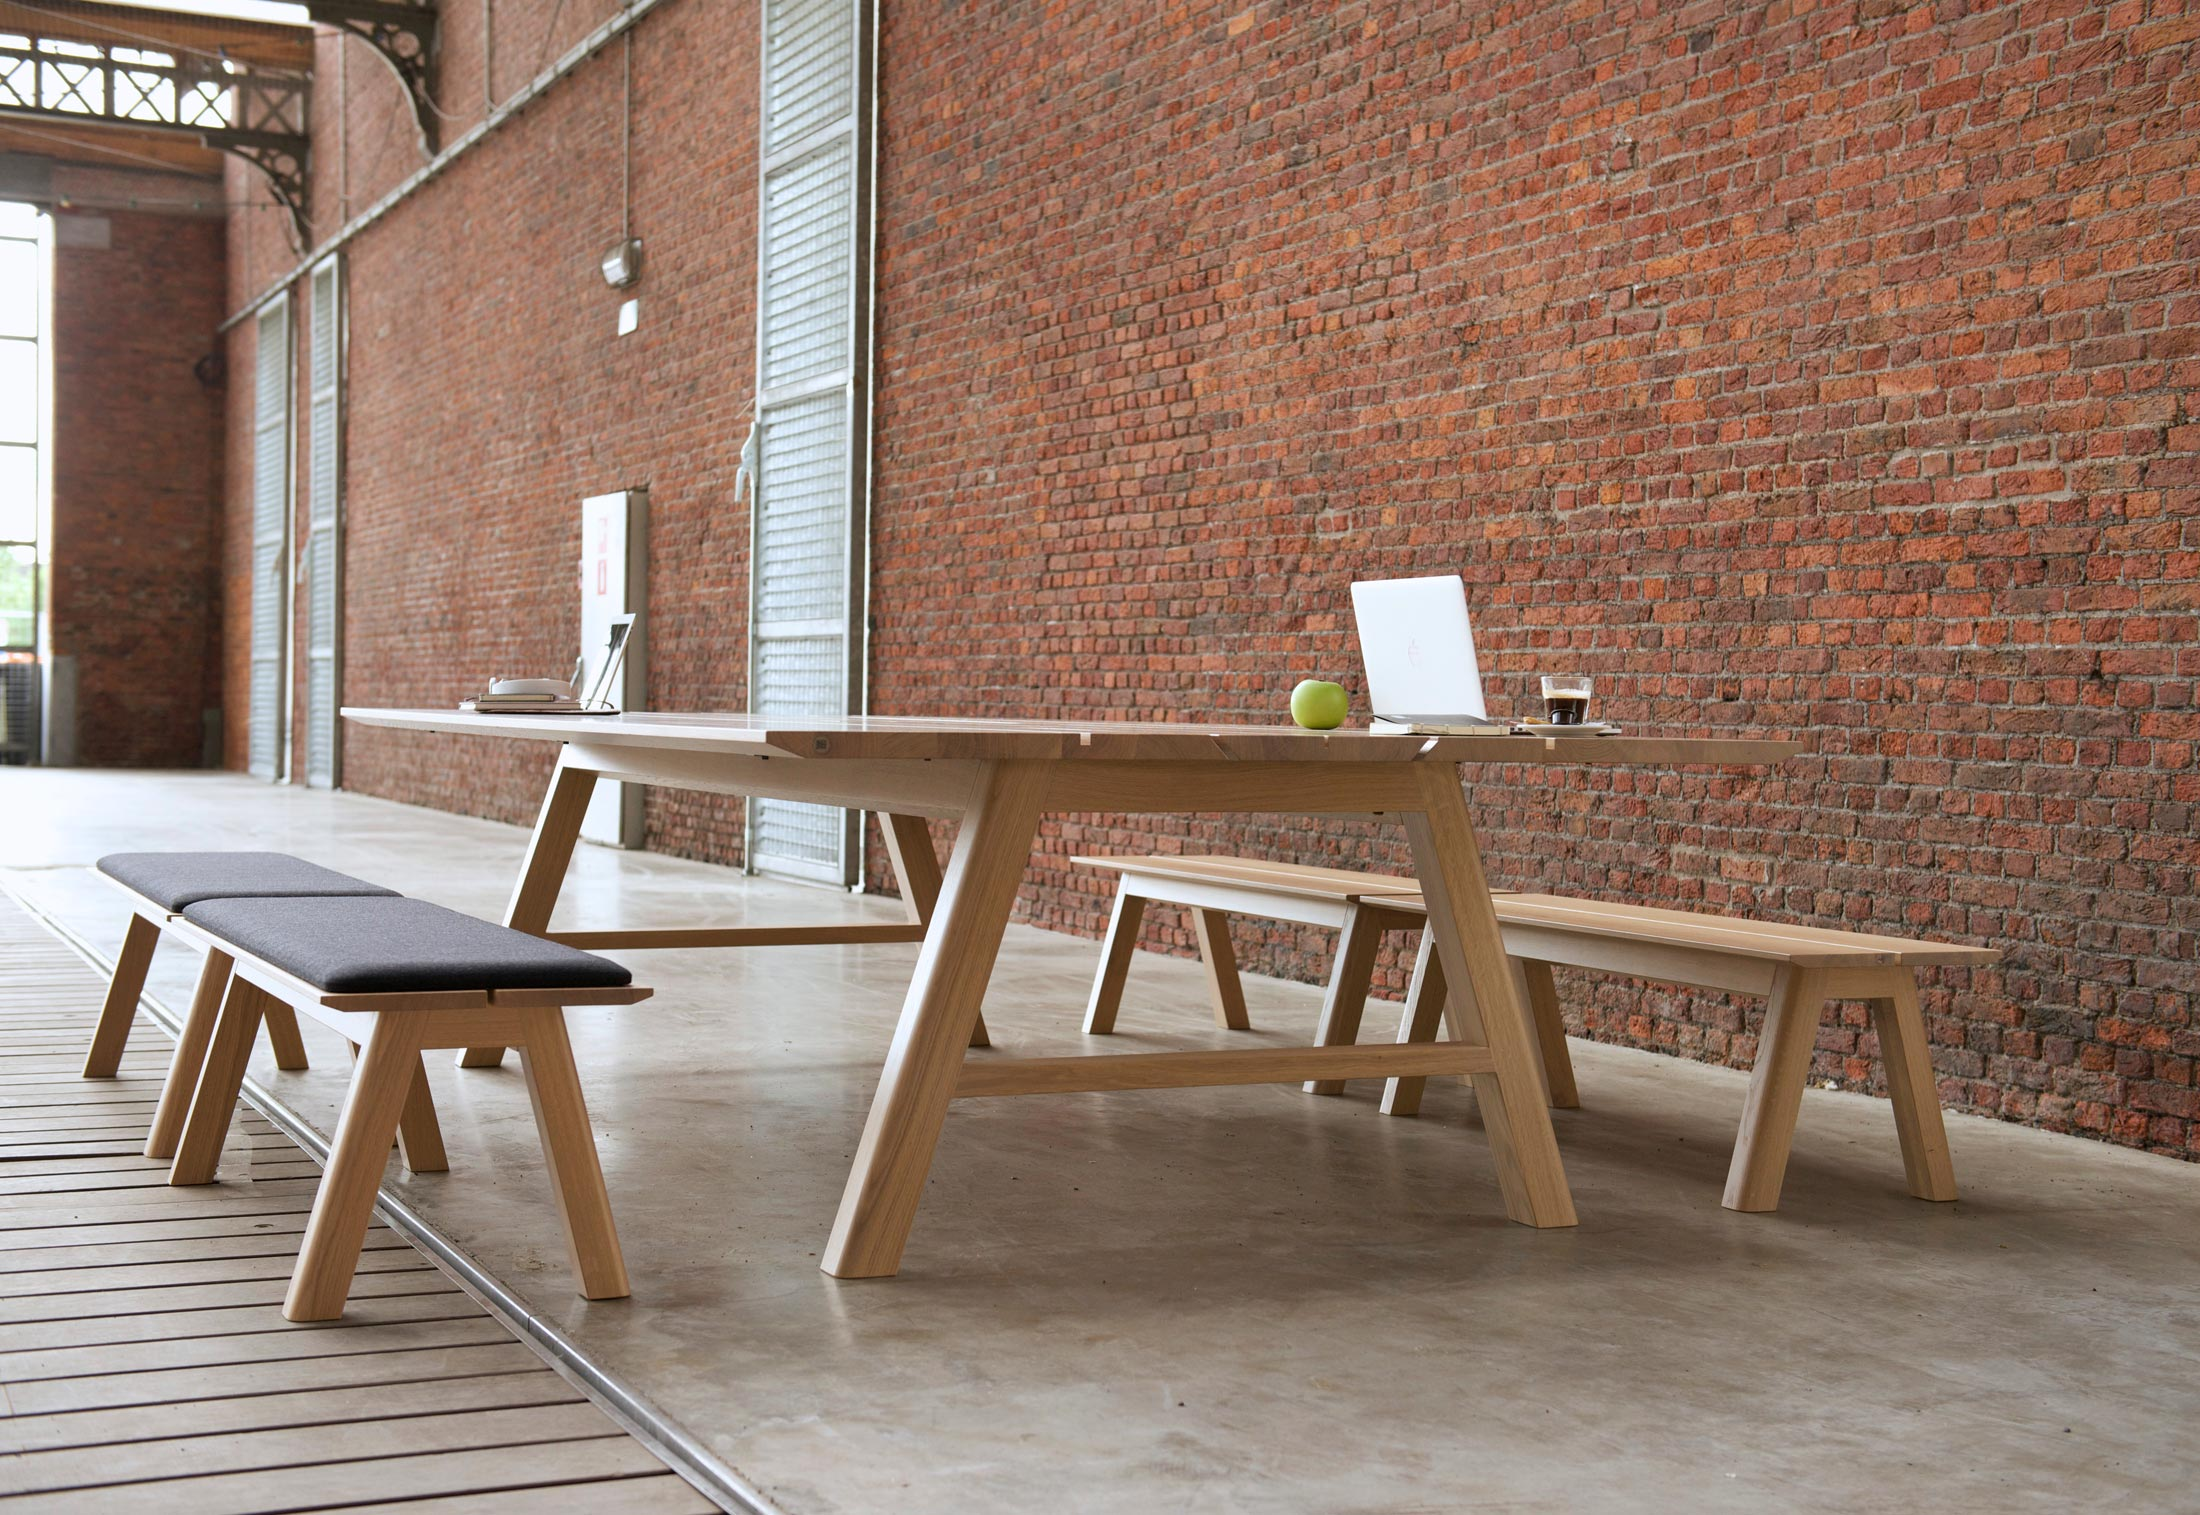 Buzzipicnic Workbench By Buzzispace Stylepark